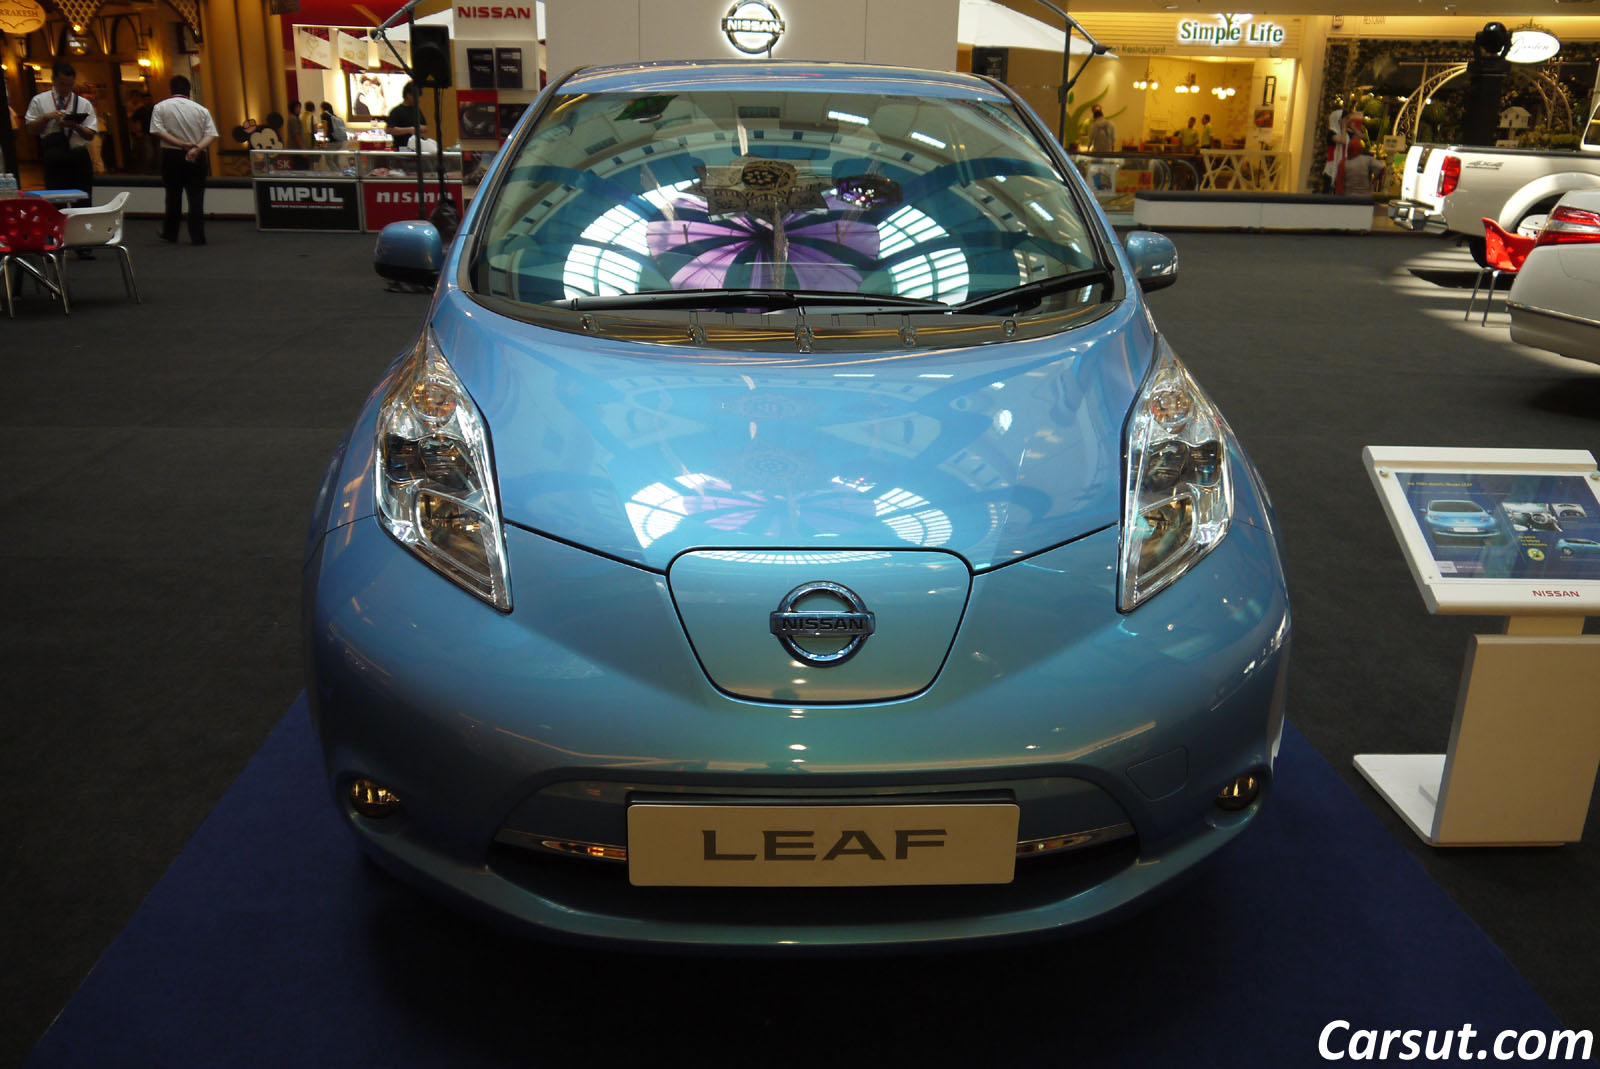 Nissan Leaf Electric Car With No Gas Needed Carsut